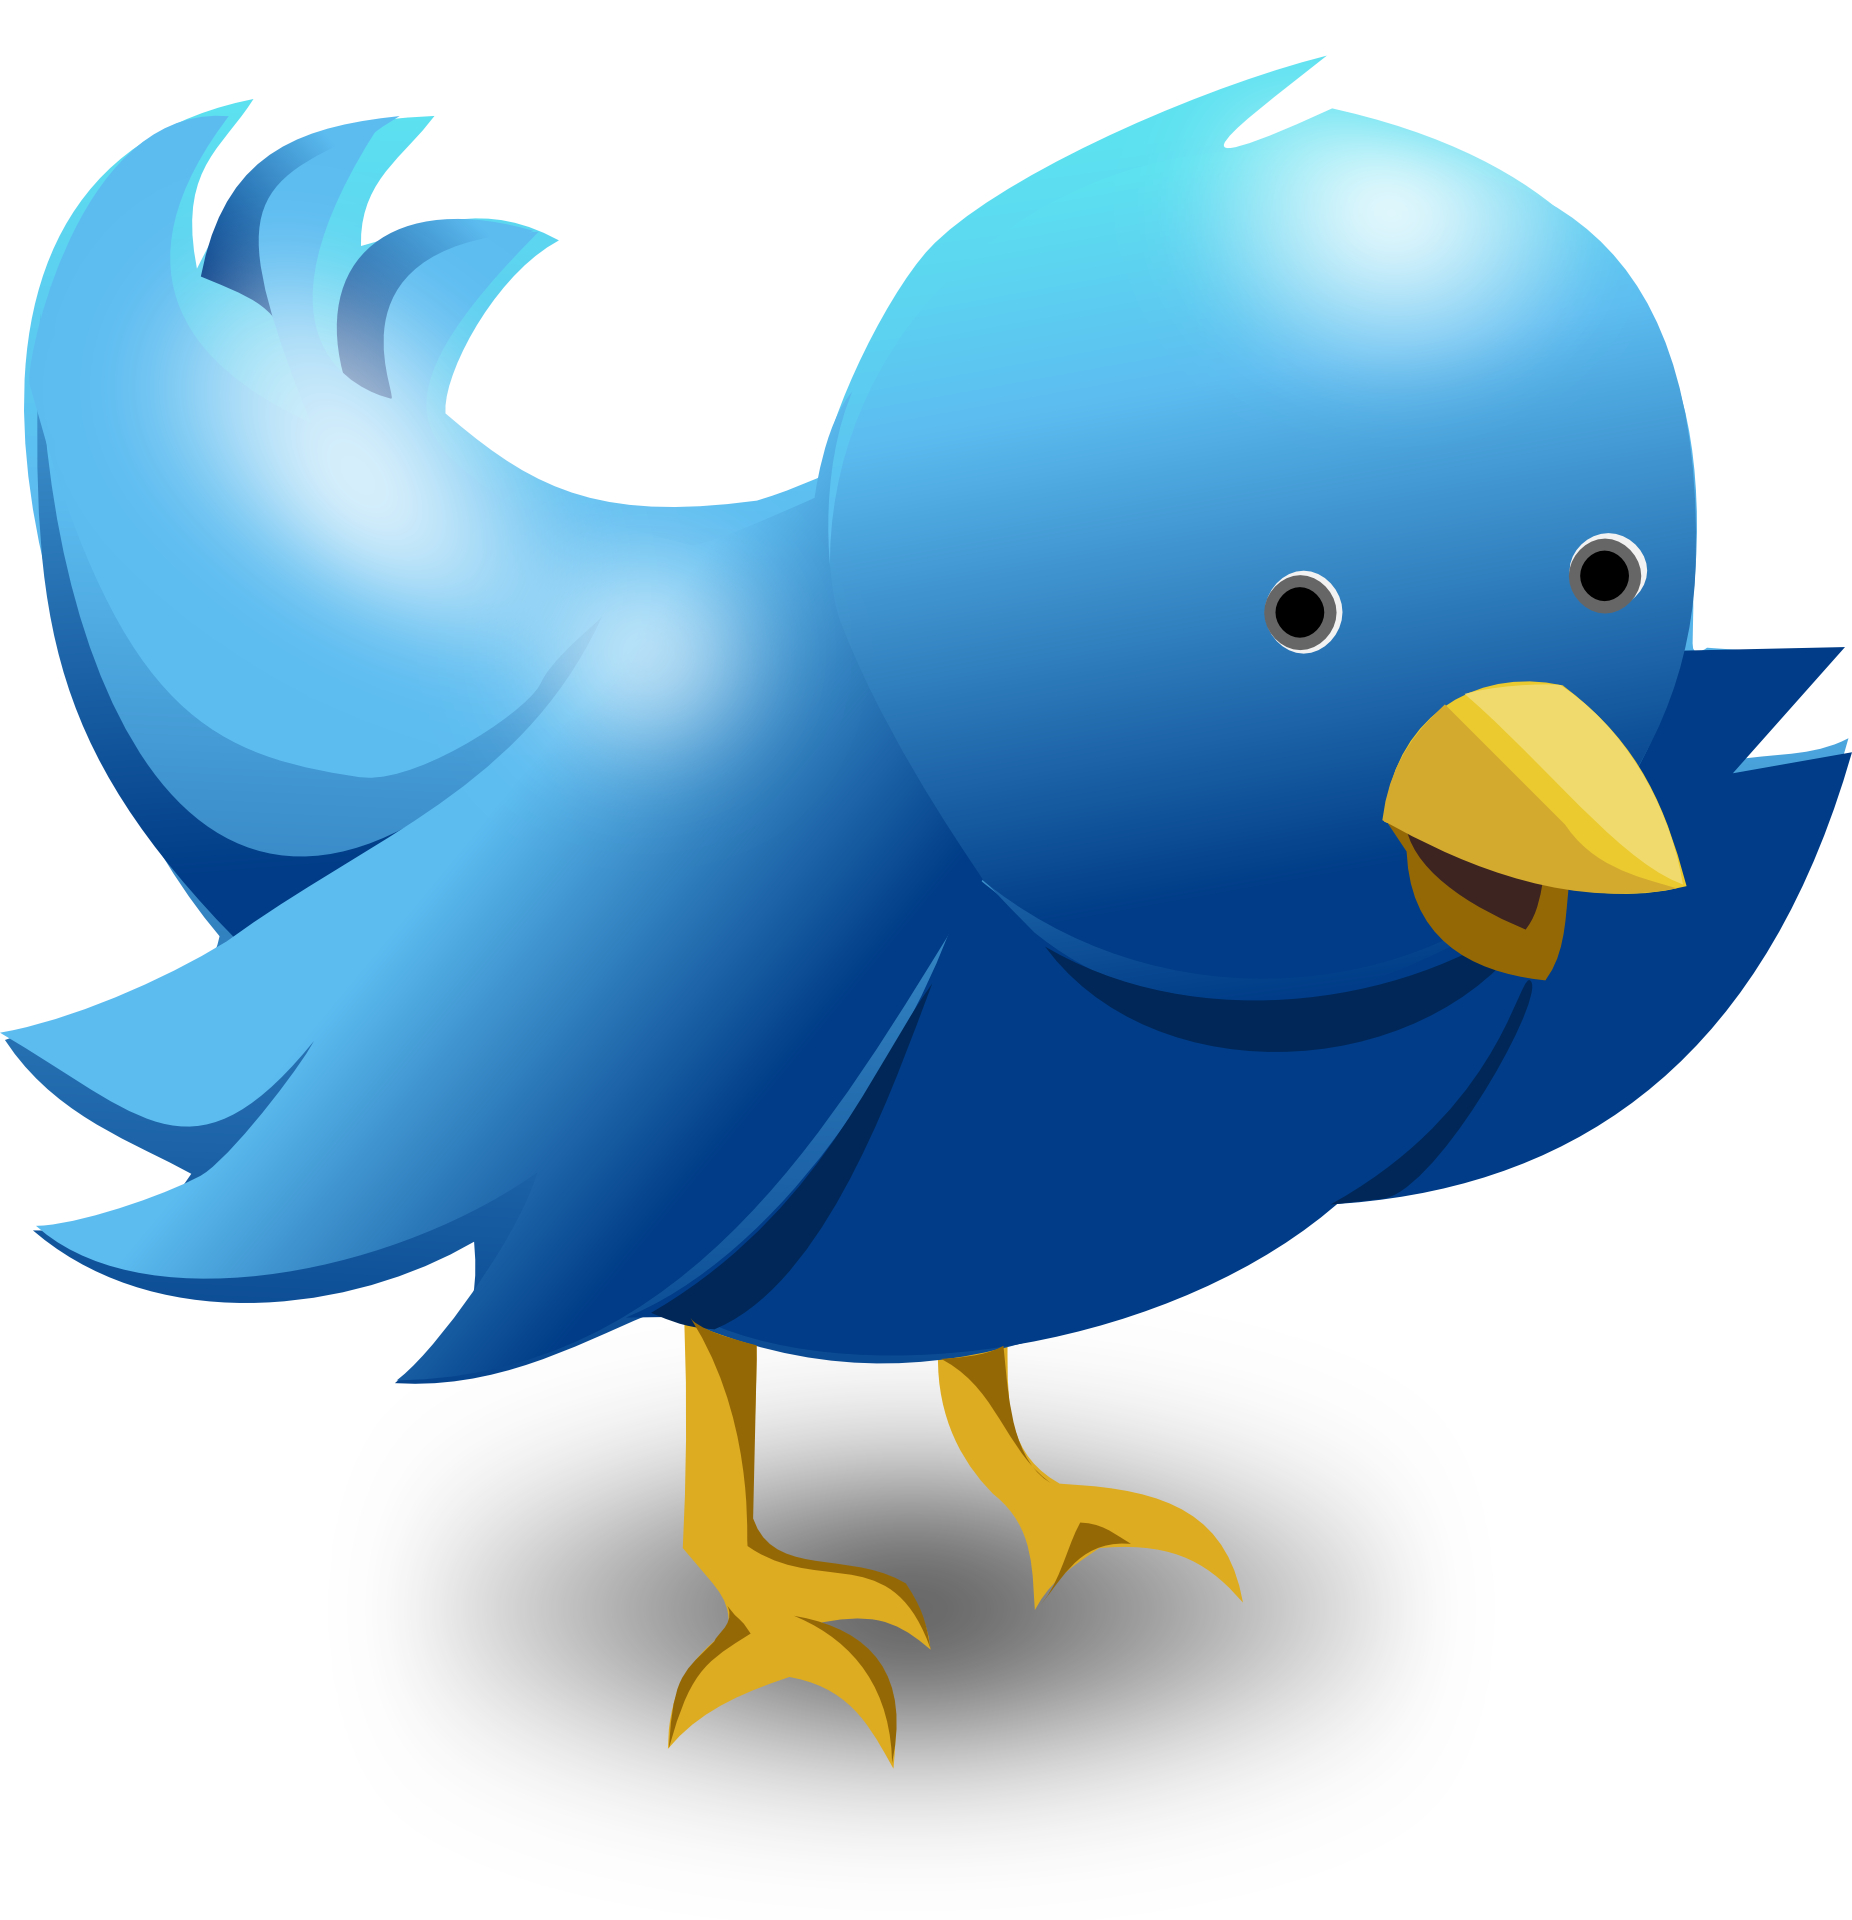 Symbol of twitter vector,cartoon blue bird